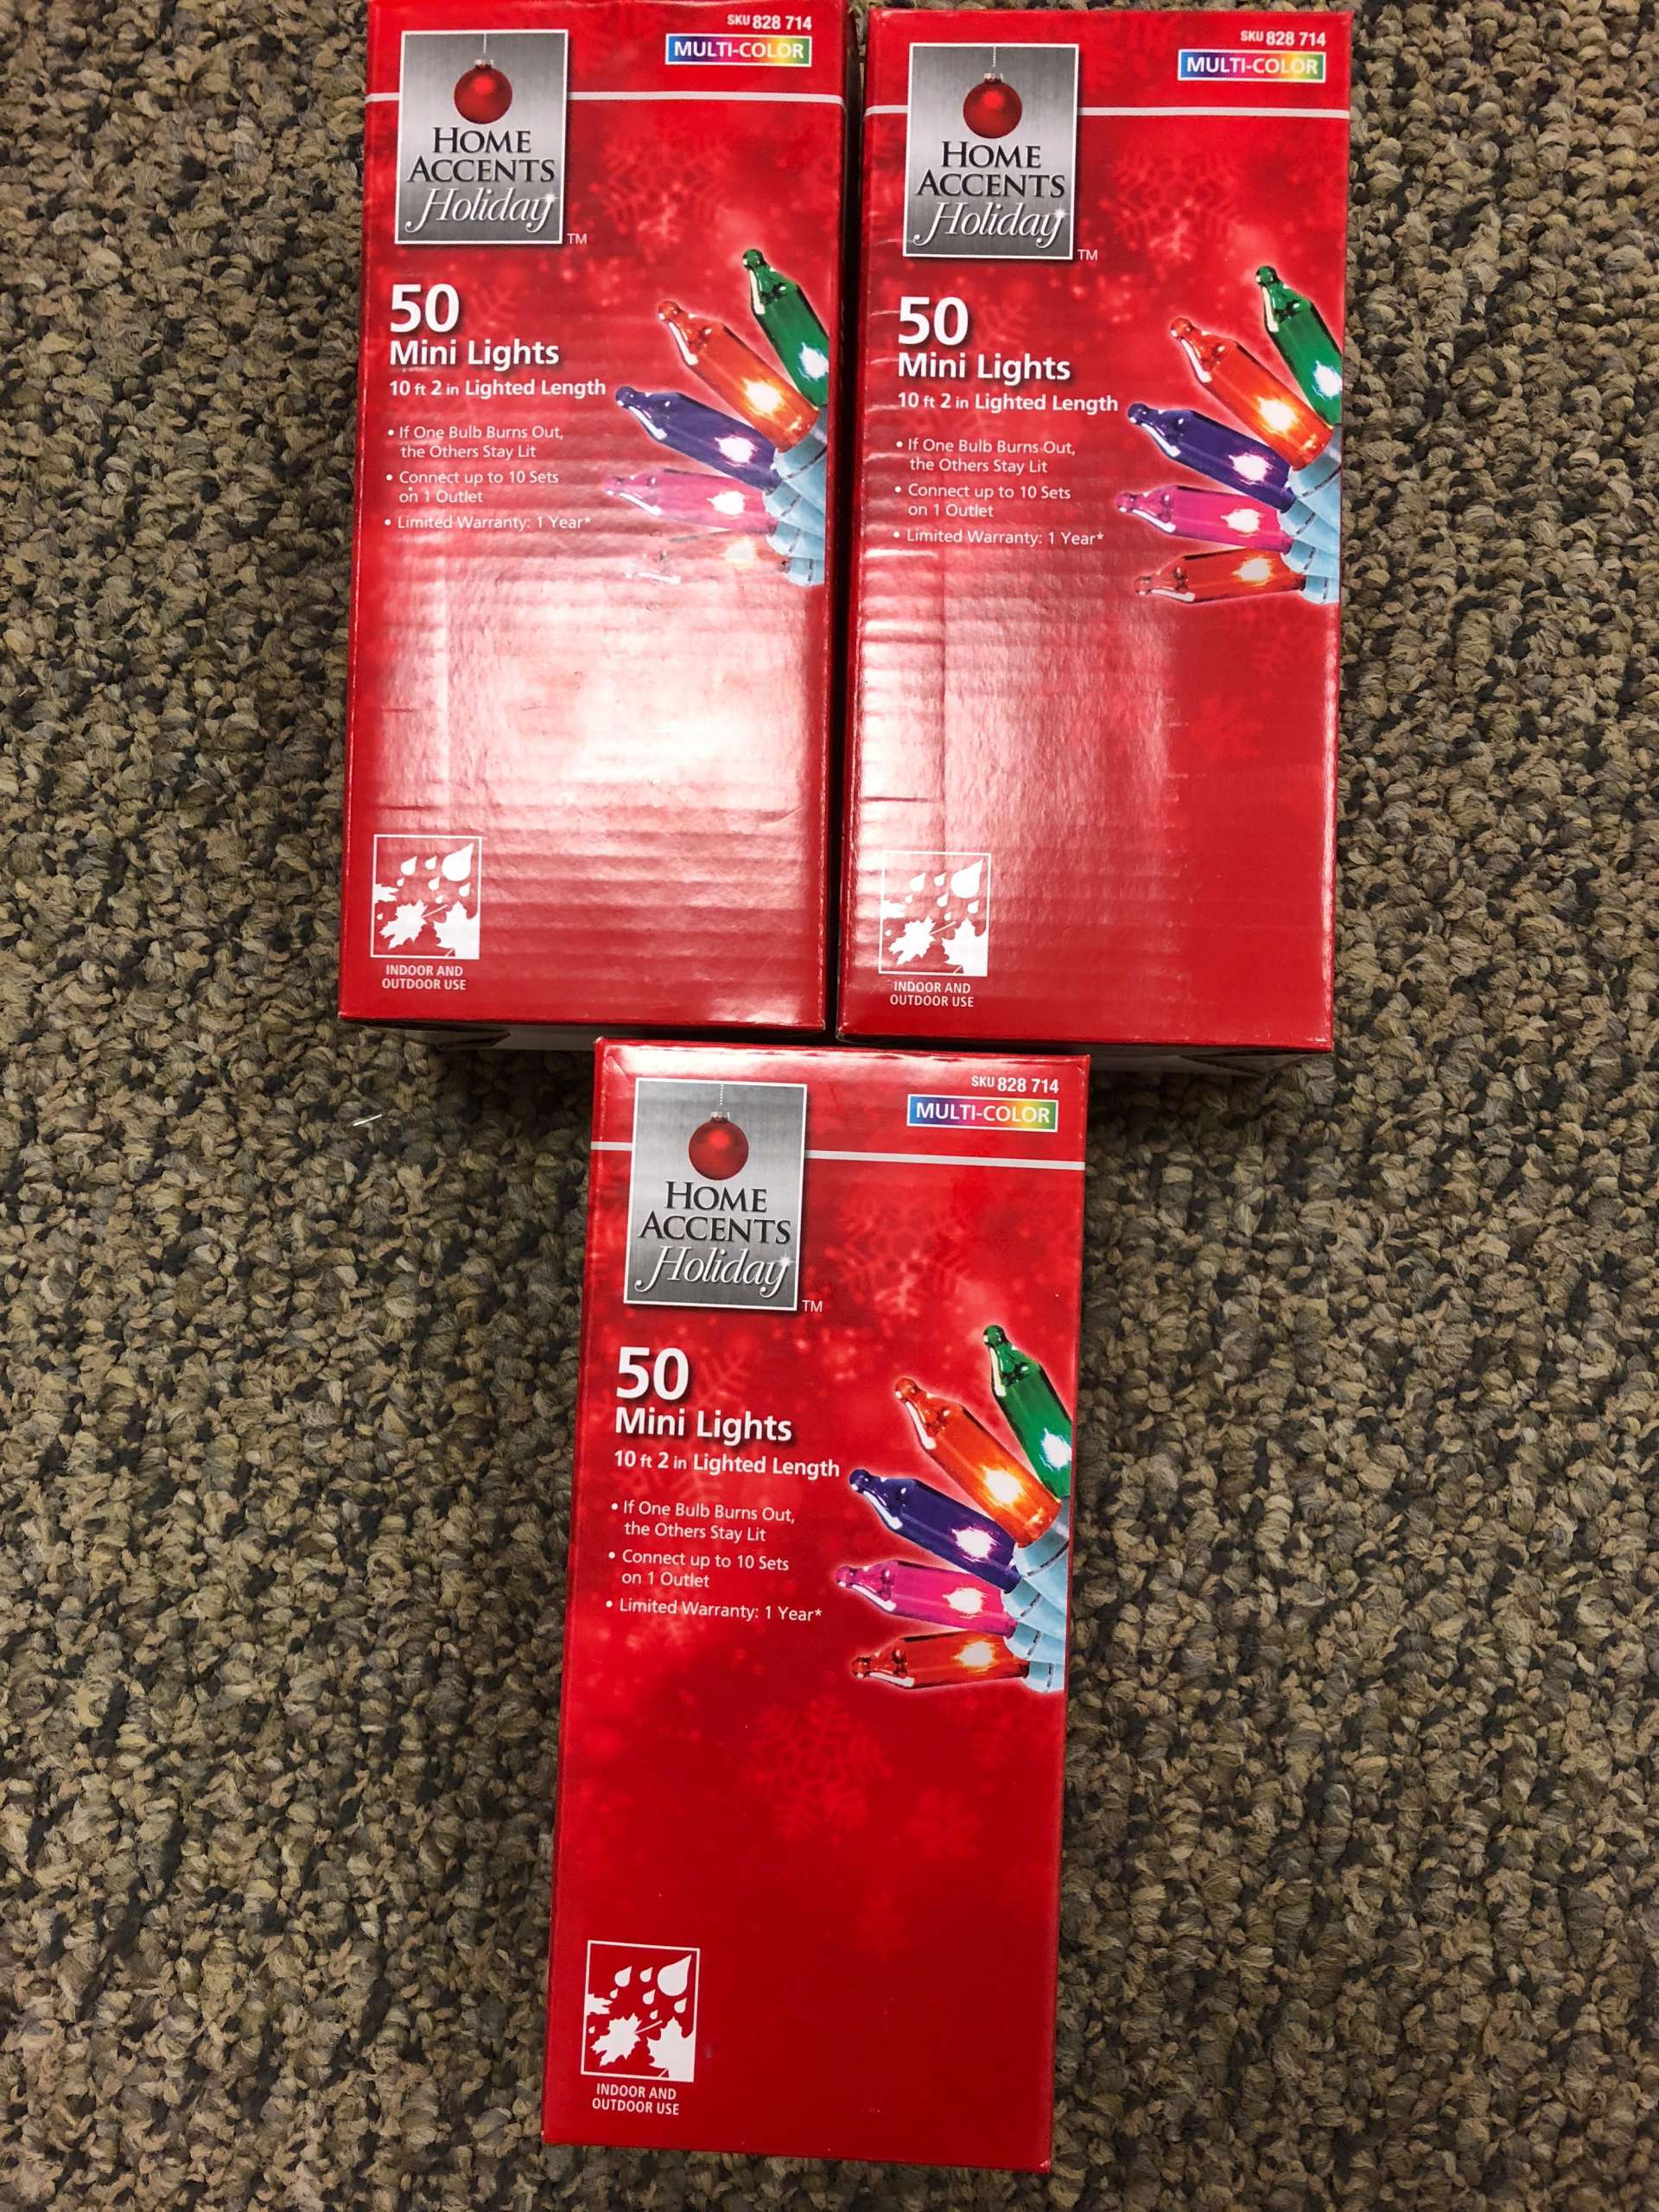 Lot Of 3 Home Accents Holiday 50 Mini Lights 10 ft 828714